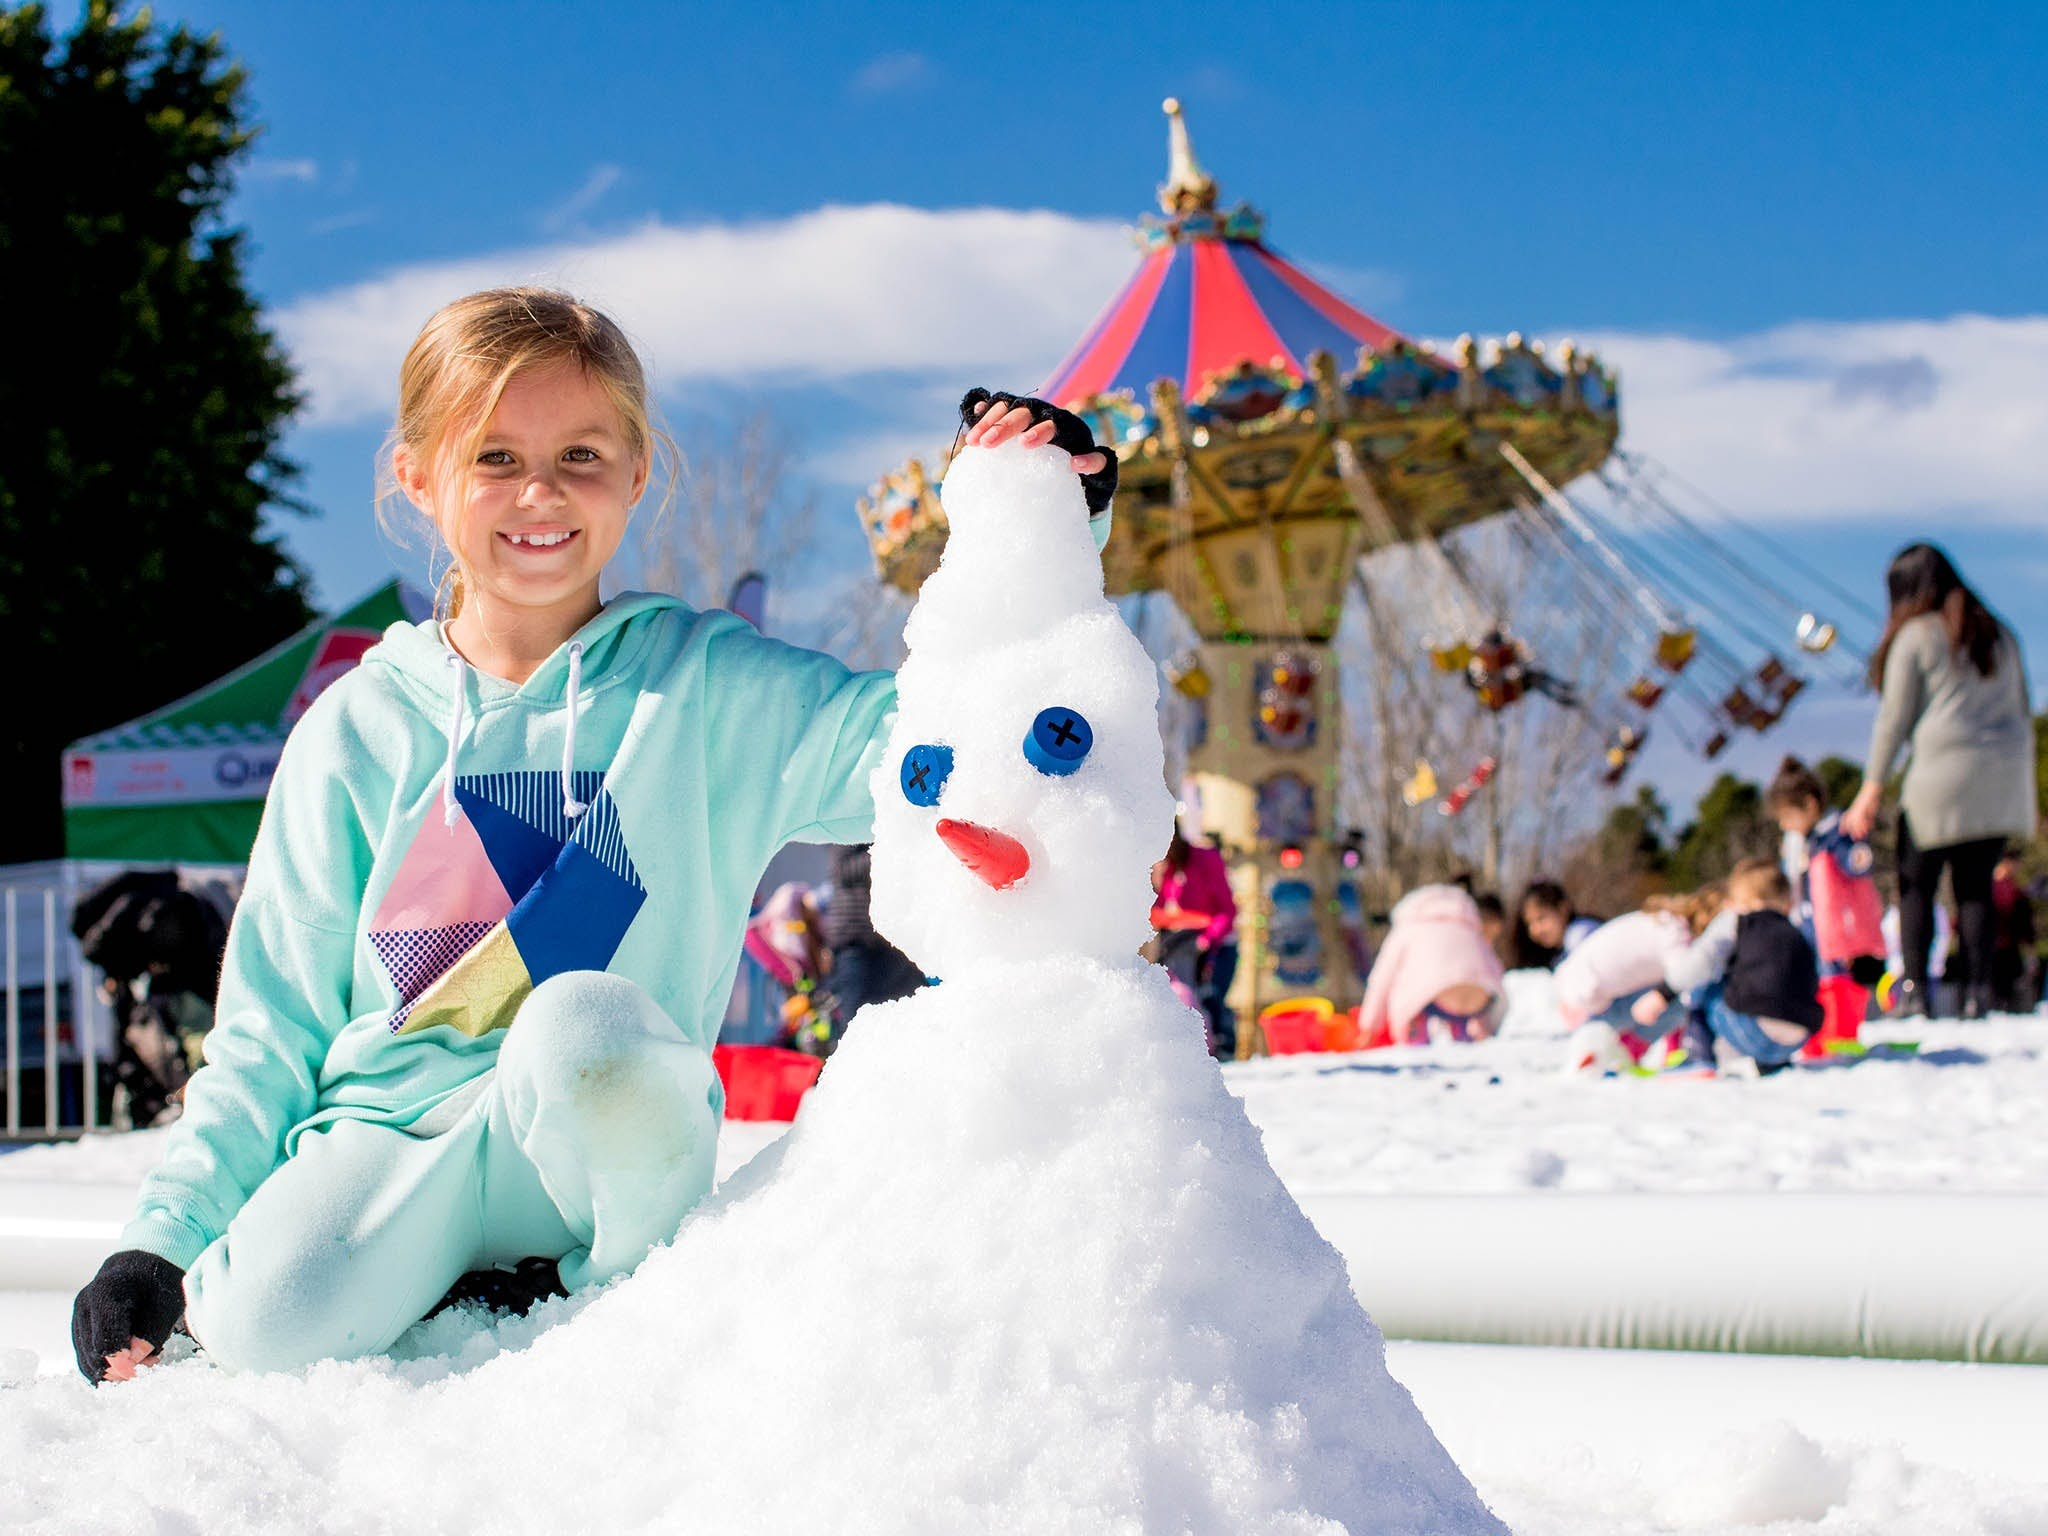 Snow Time in the Garden - Hunter Valley Gardens - Cancelled - Pubs Sydney